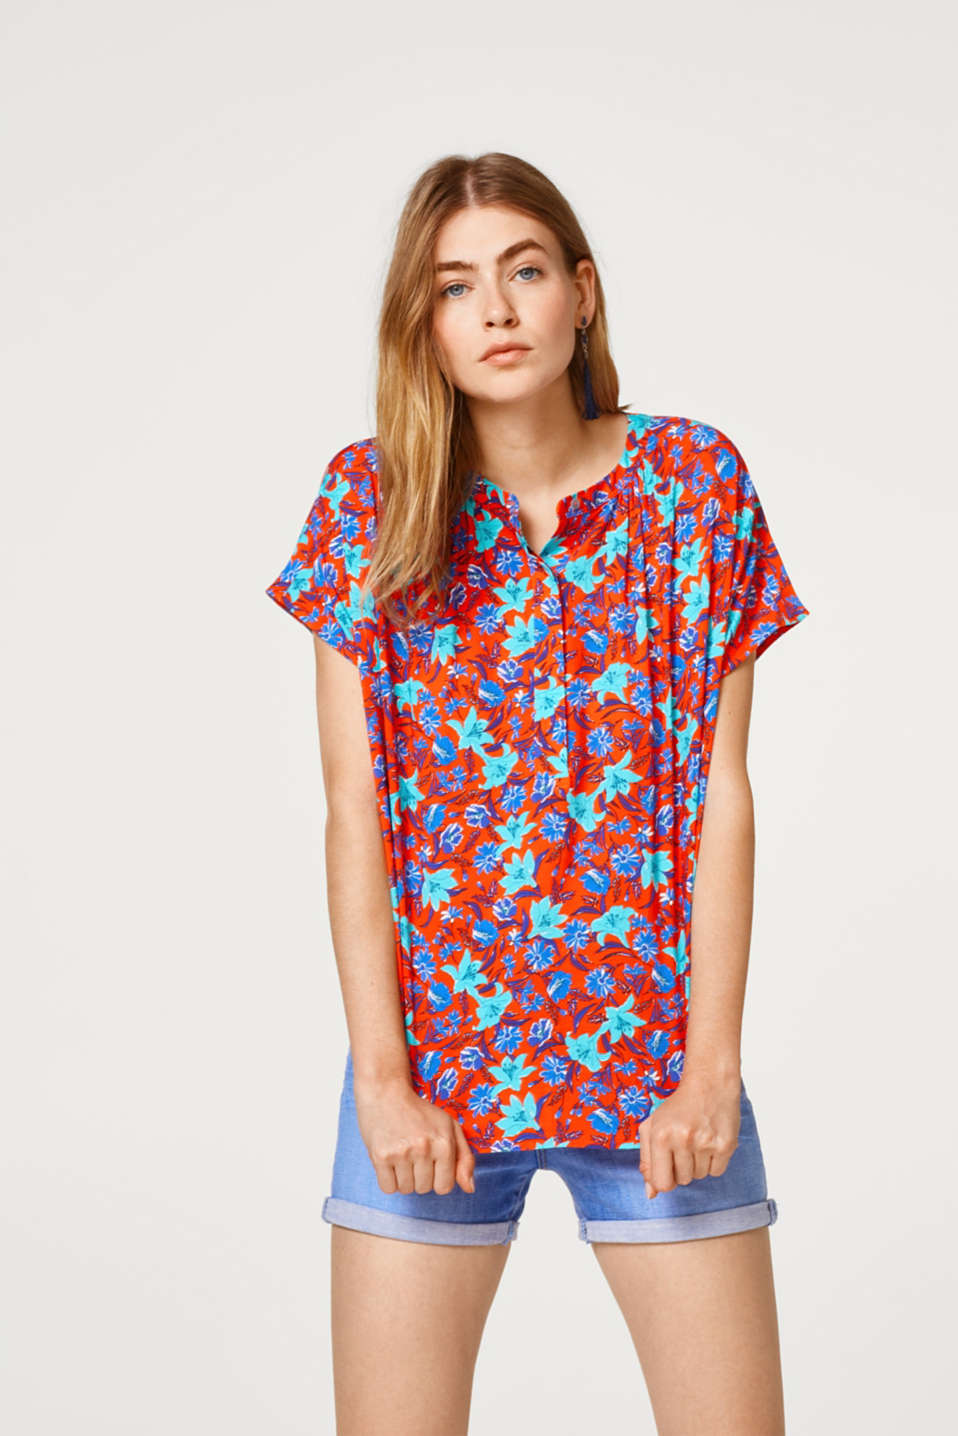 Esprit - Blouse top with a floral print and fine woven polka dots